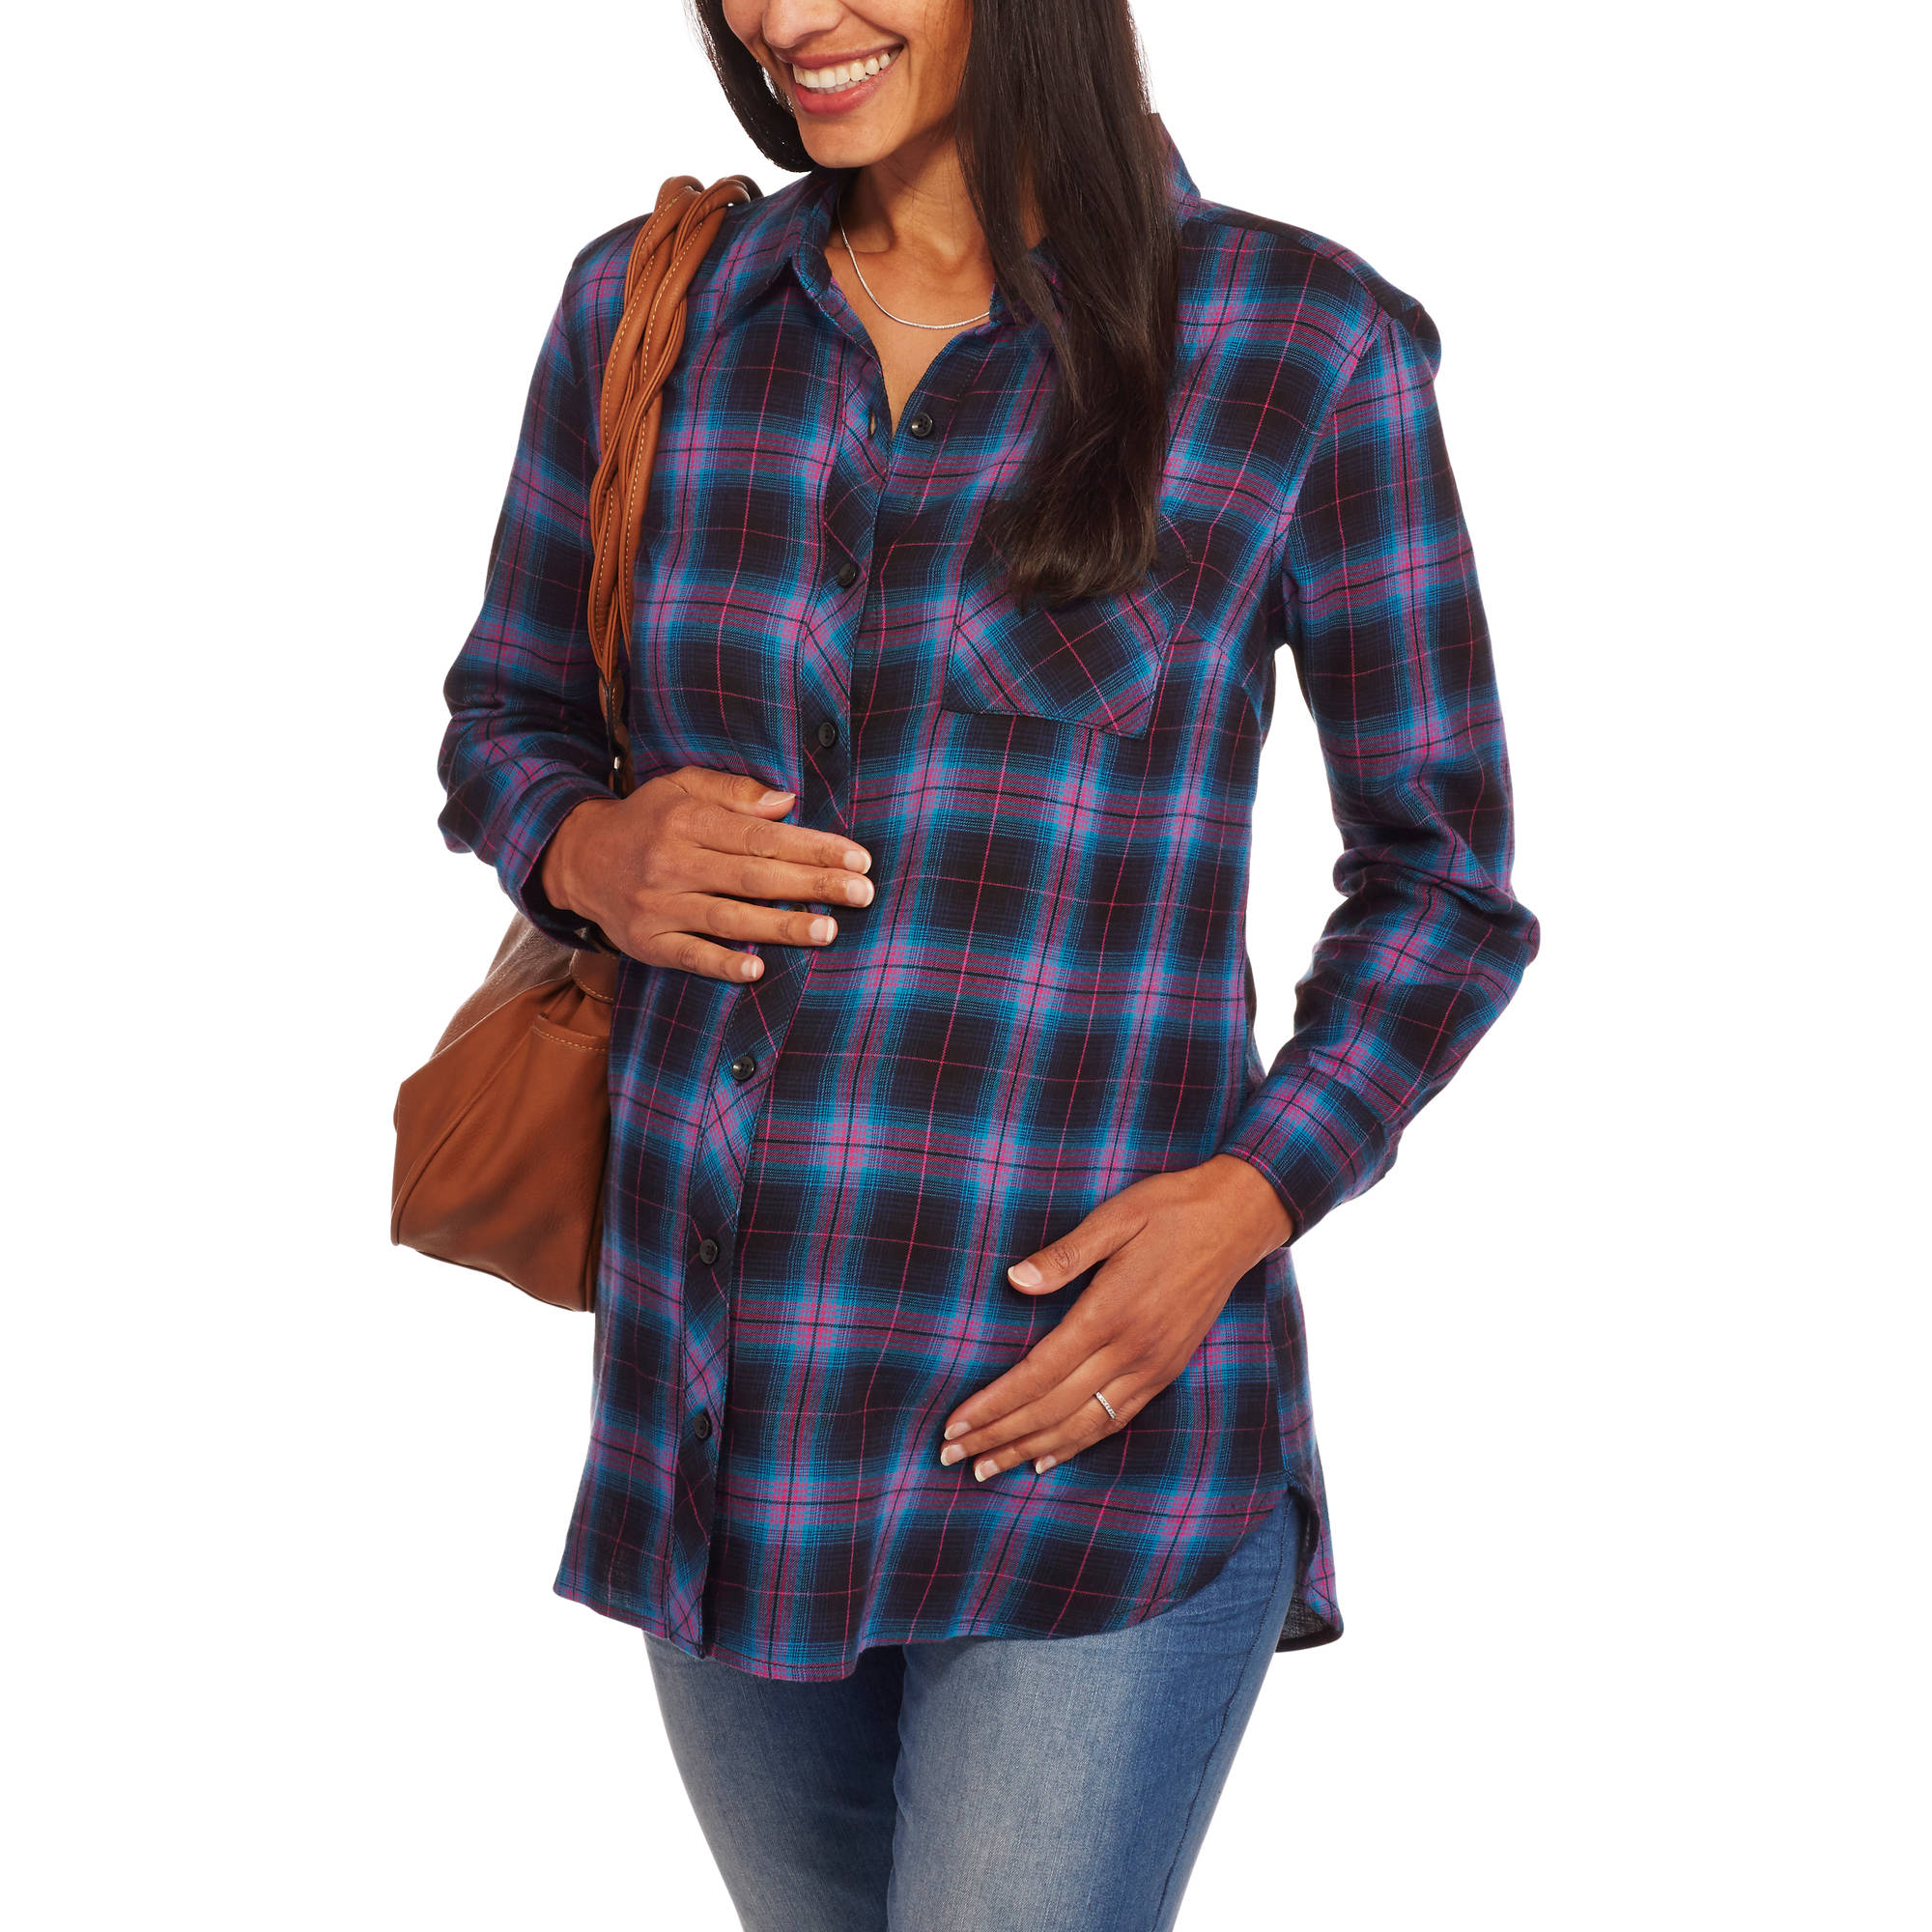 Faded Glory Maternity One Pocket Plaid Button Up Tunic Shirt